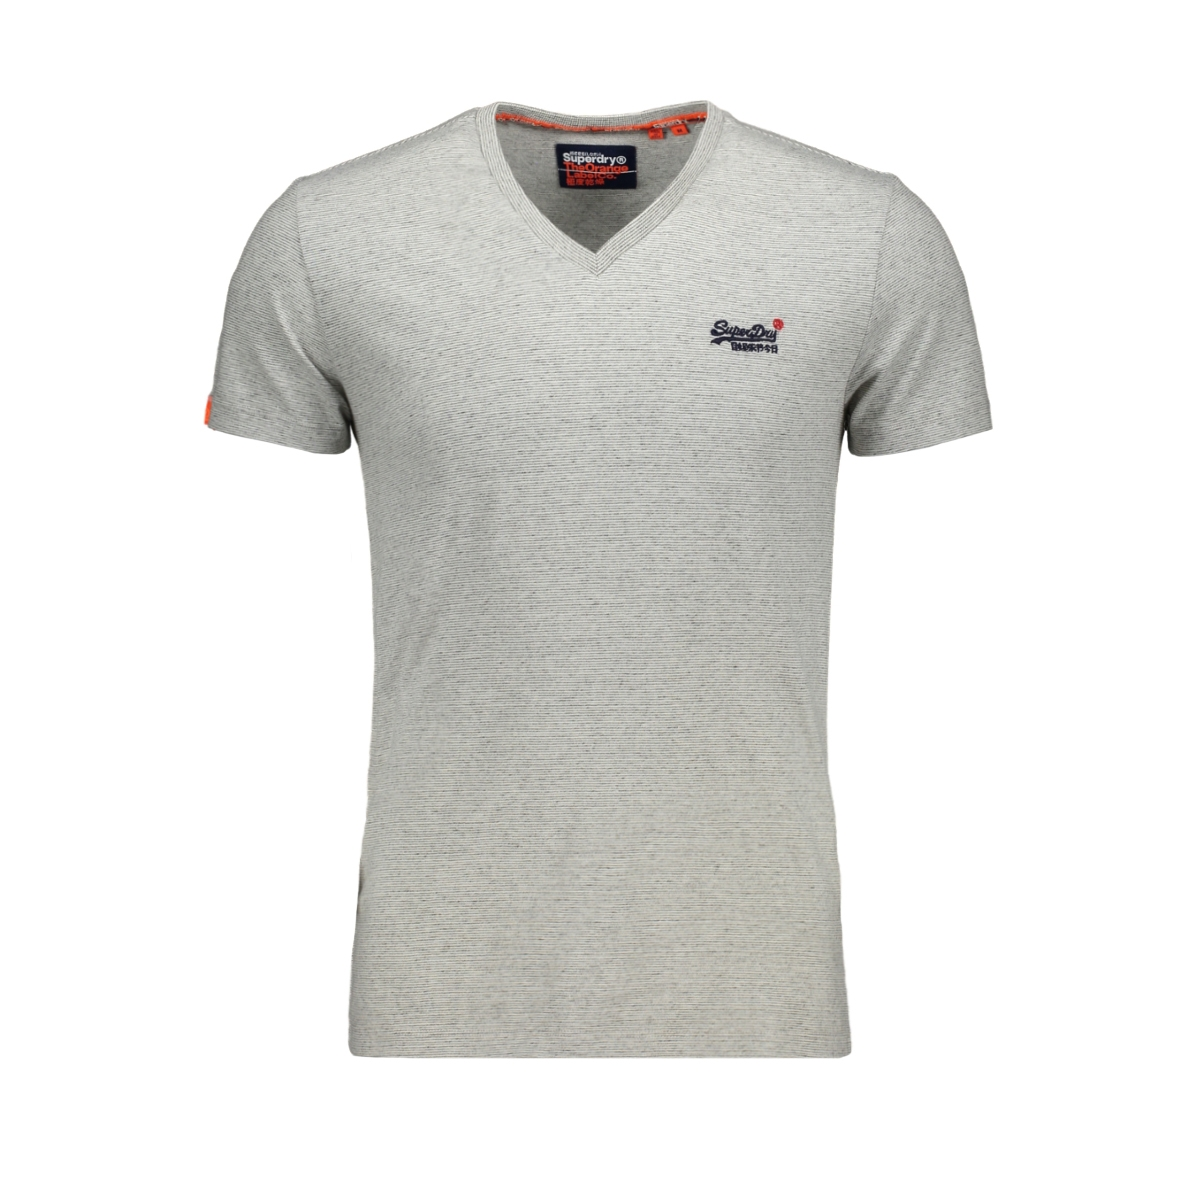 vintage tee m1010032a superdry t-shirt silver glass feeder